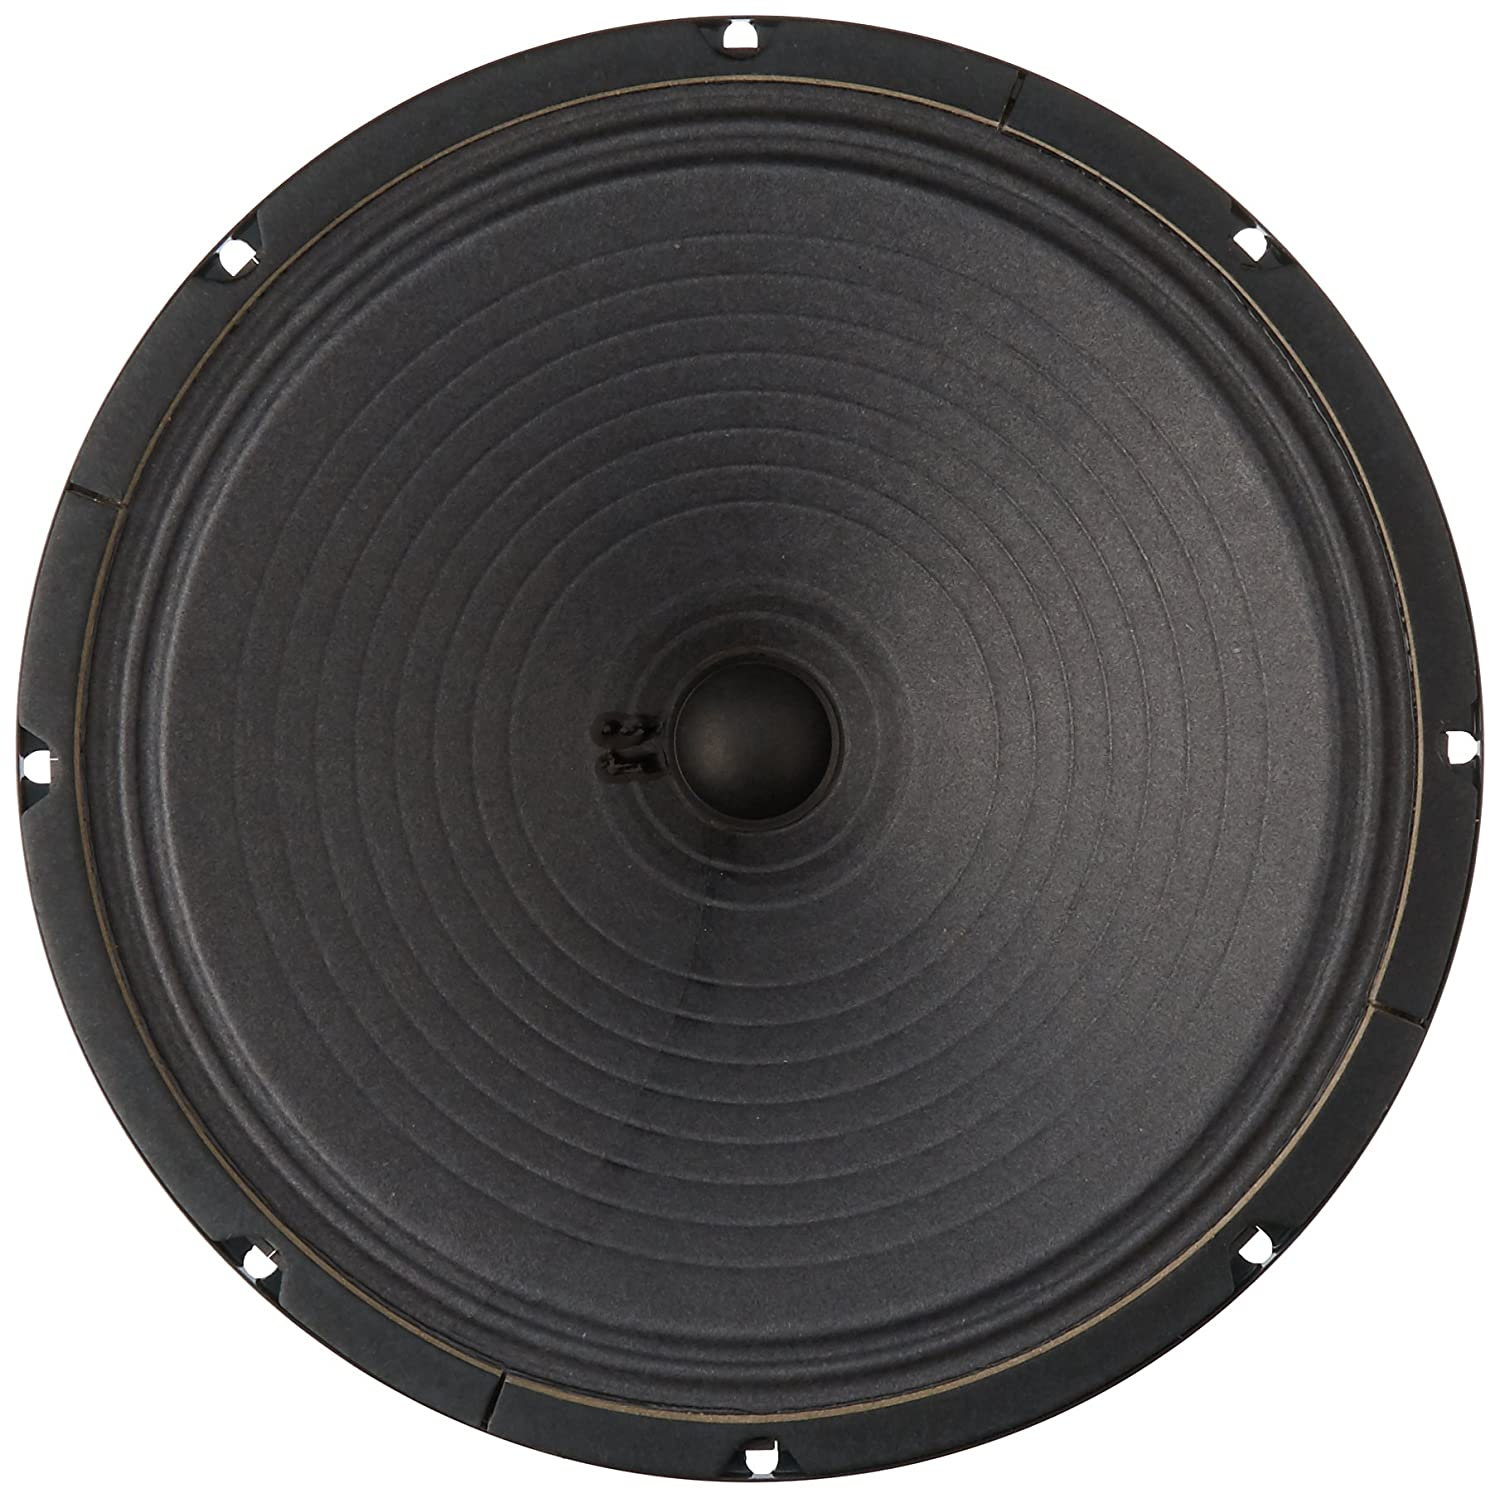 Amazon.com: Jensen Vintage P12R8 12-Inch Alnico Speaker, 8 ohm: Musical  Instruments